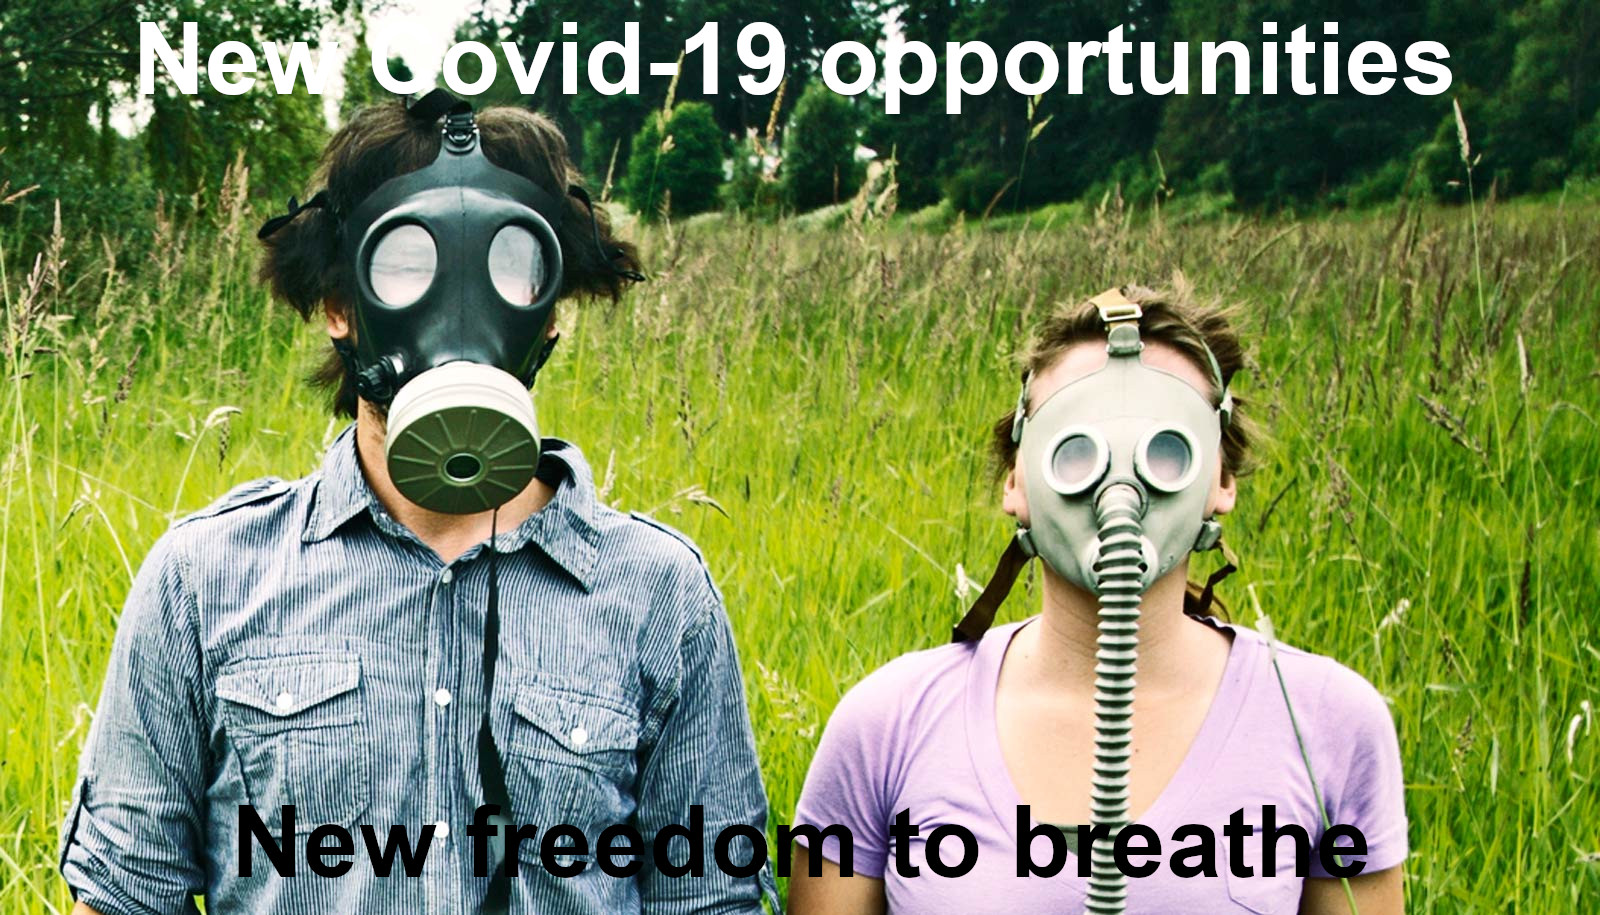 New Covid-19 opportunities. New freedom to breathe.